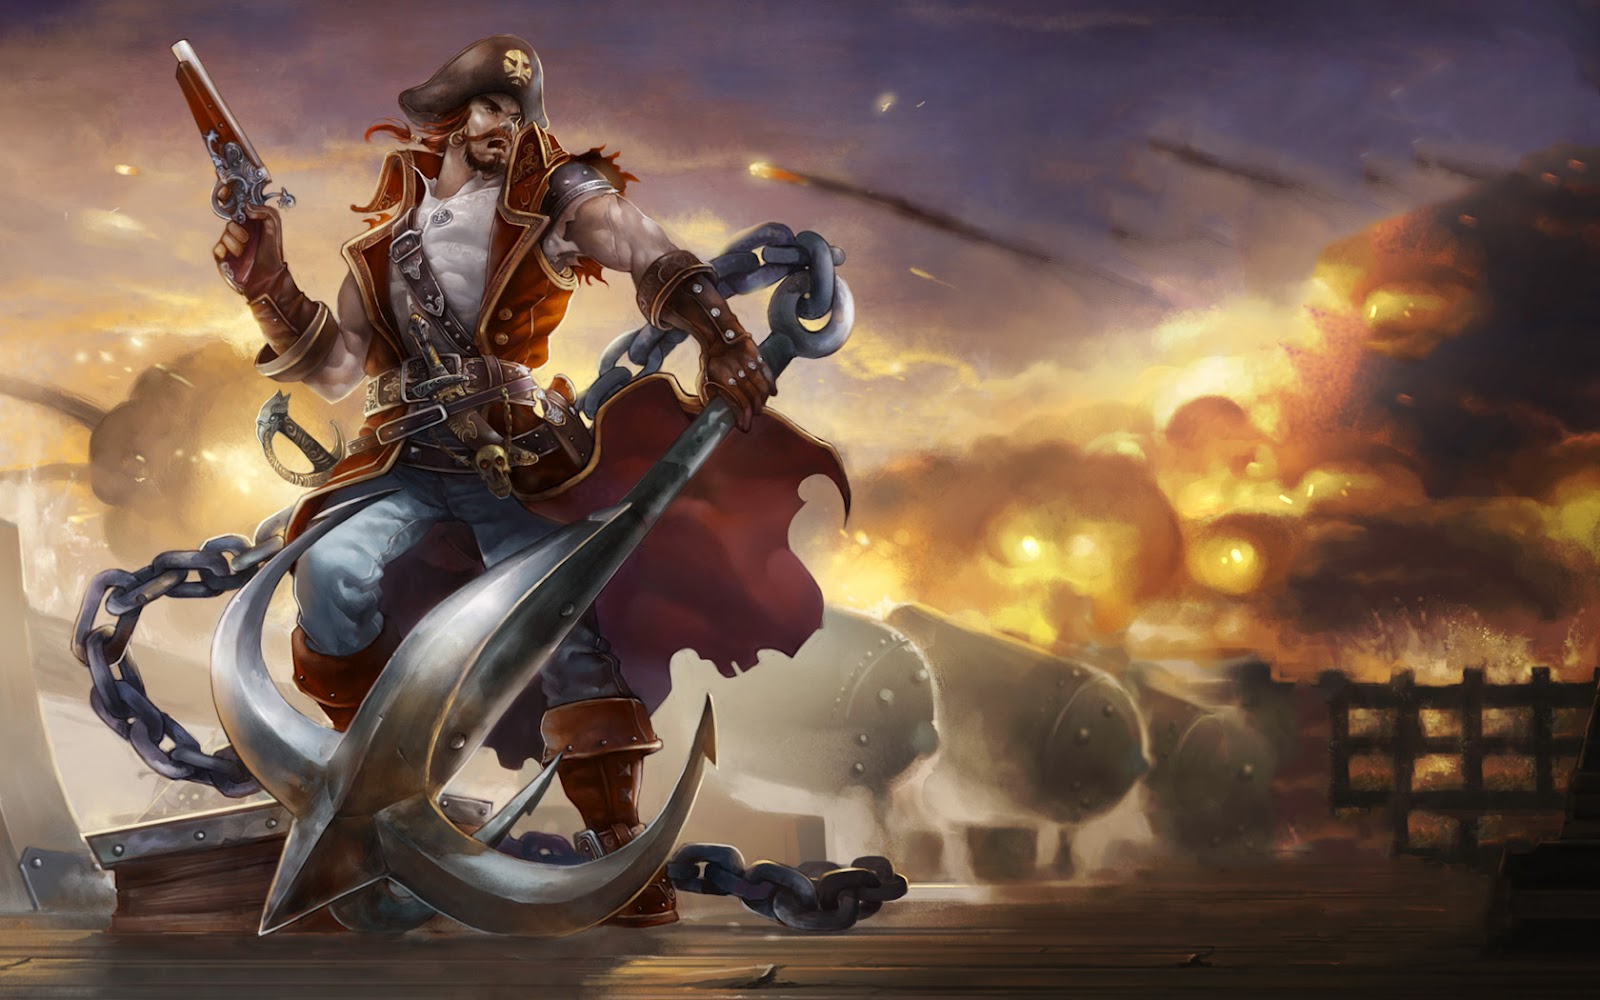 http://4.bp.blogspot.com/-1W5wtihLheo/UBdkCiObWbI/AAAAAAAAI3Q/Hgcjtizk5yY/s1600/6773_league_of_legends_hd_wallpapers.jpg